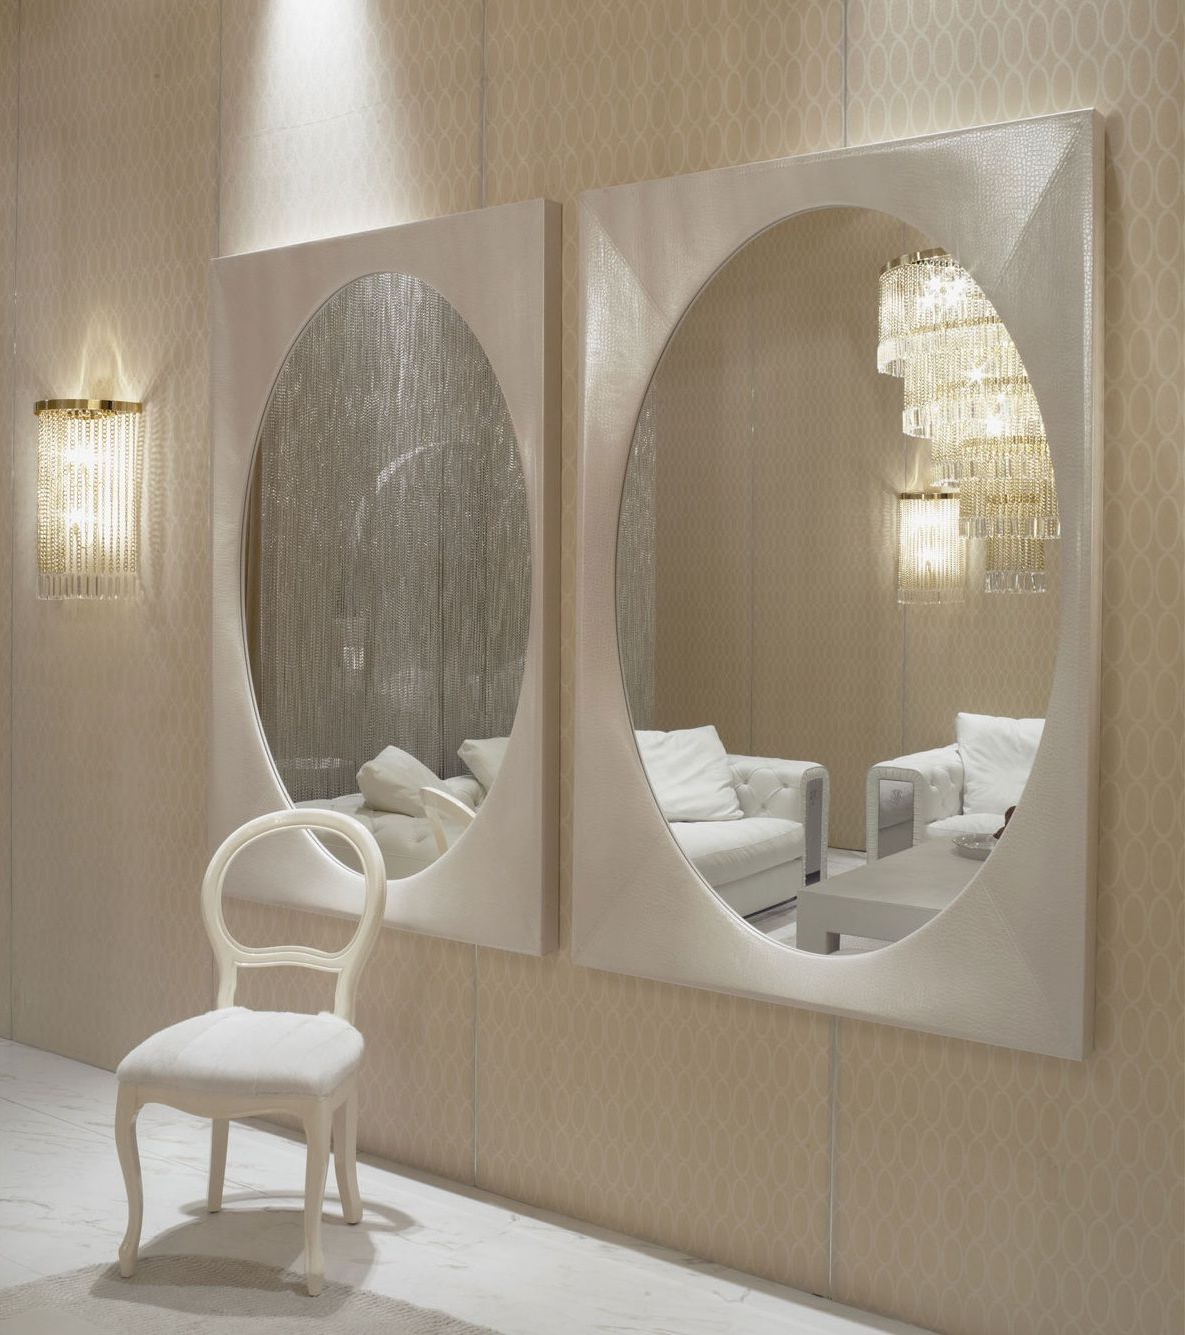 Instyle Decor Wall Mirrors, Luxury Designer Wall Mirrors With Regard To Latest Trendy Wall Mirrors (View 5 of 20)